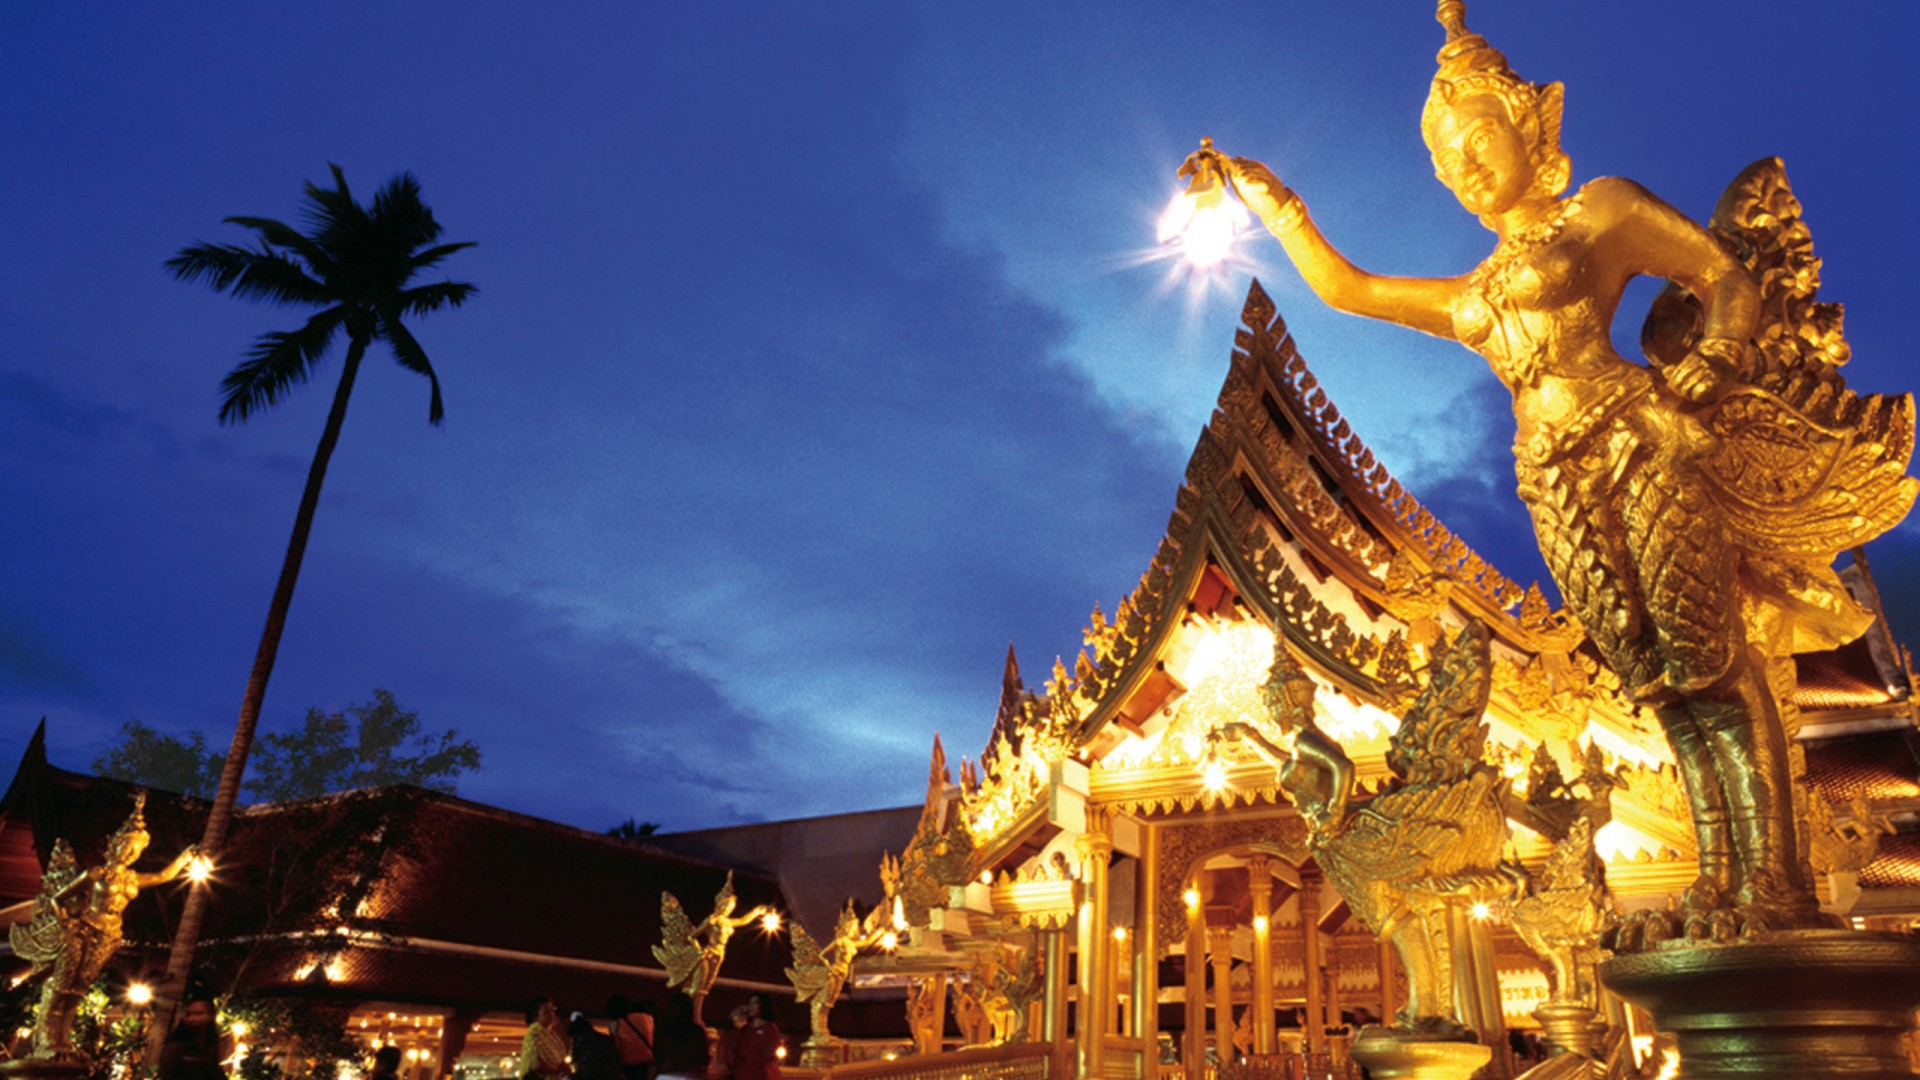 Golden Statue with a Lantern in Thailand 377.44 Kb